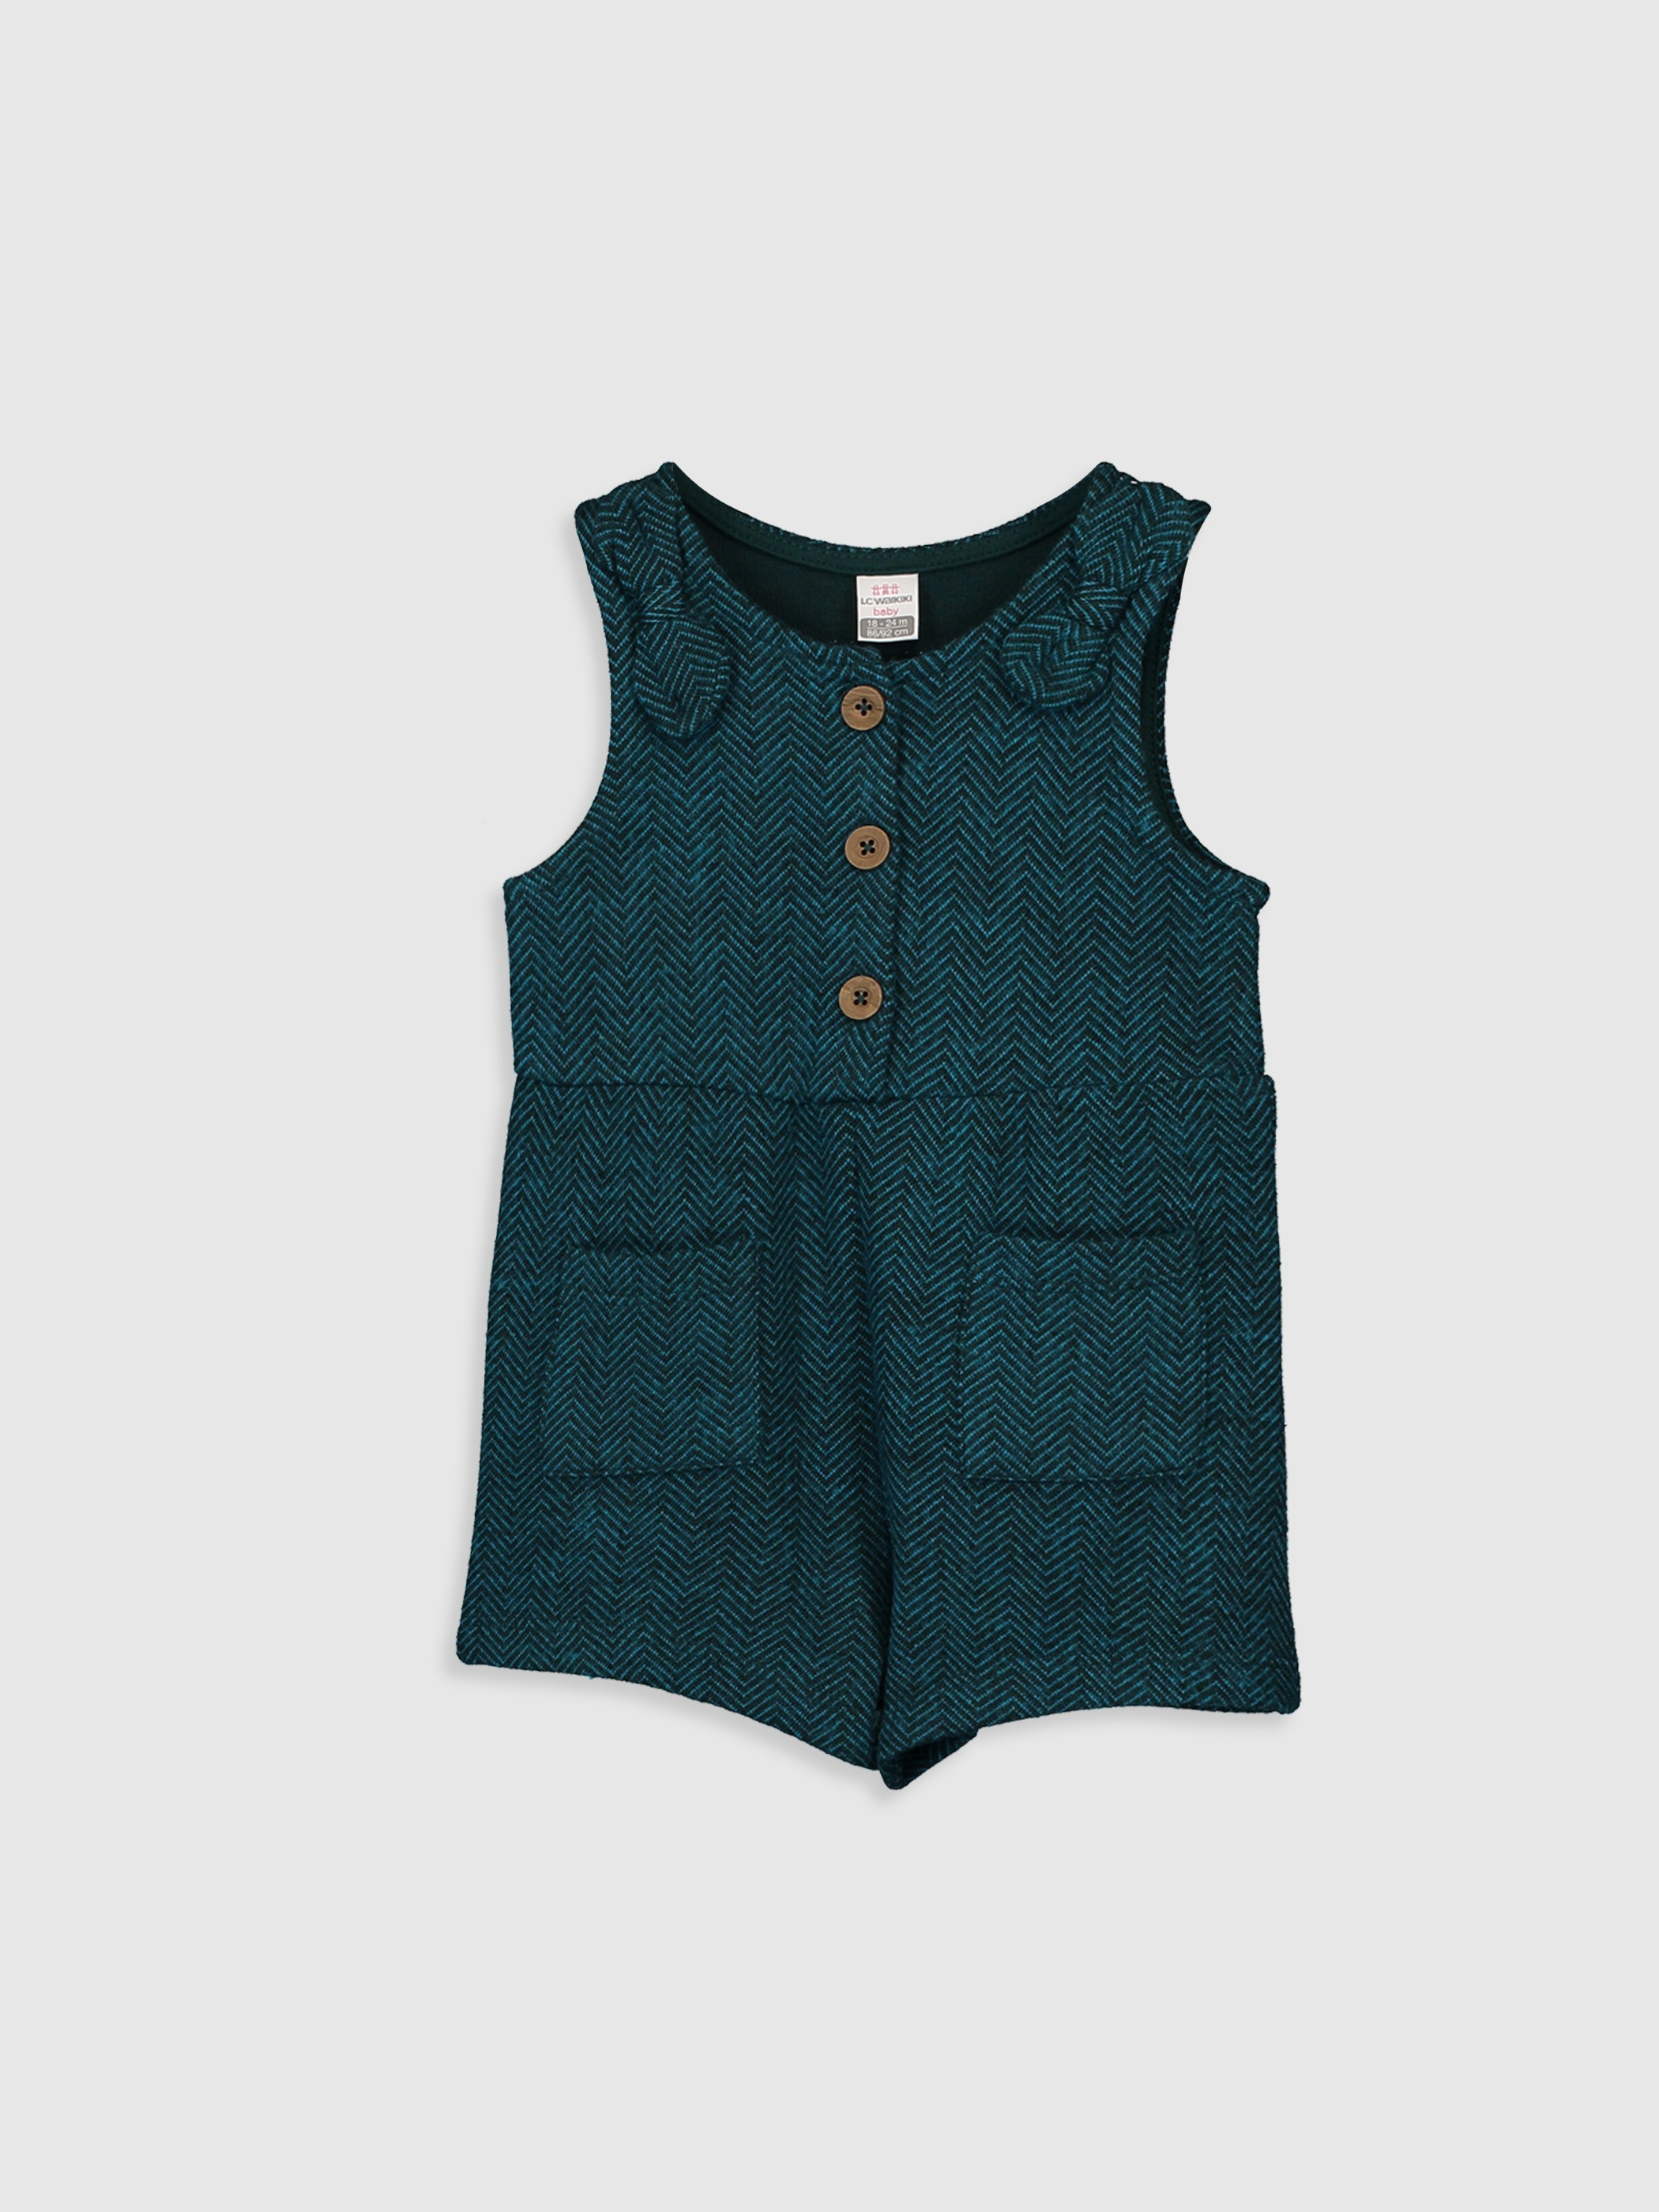 - Dungarees - 9WP554Z1